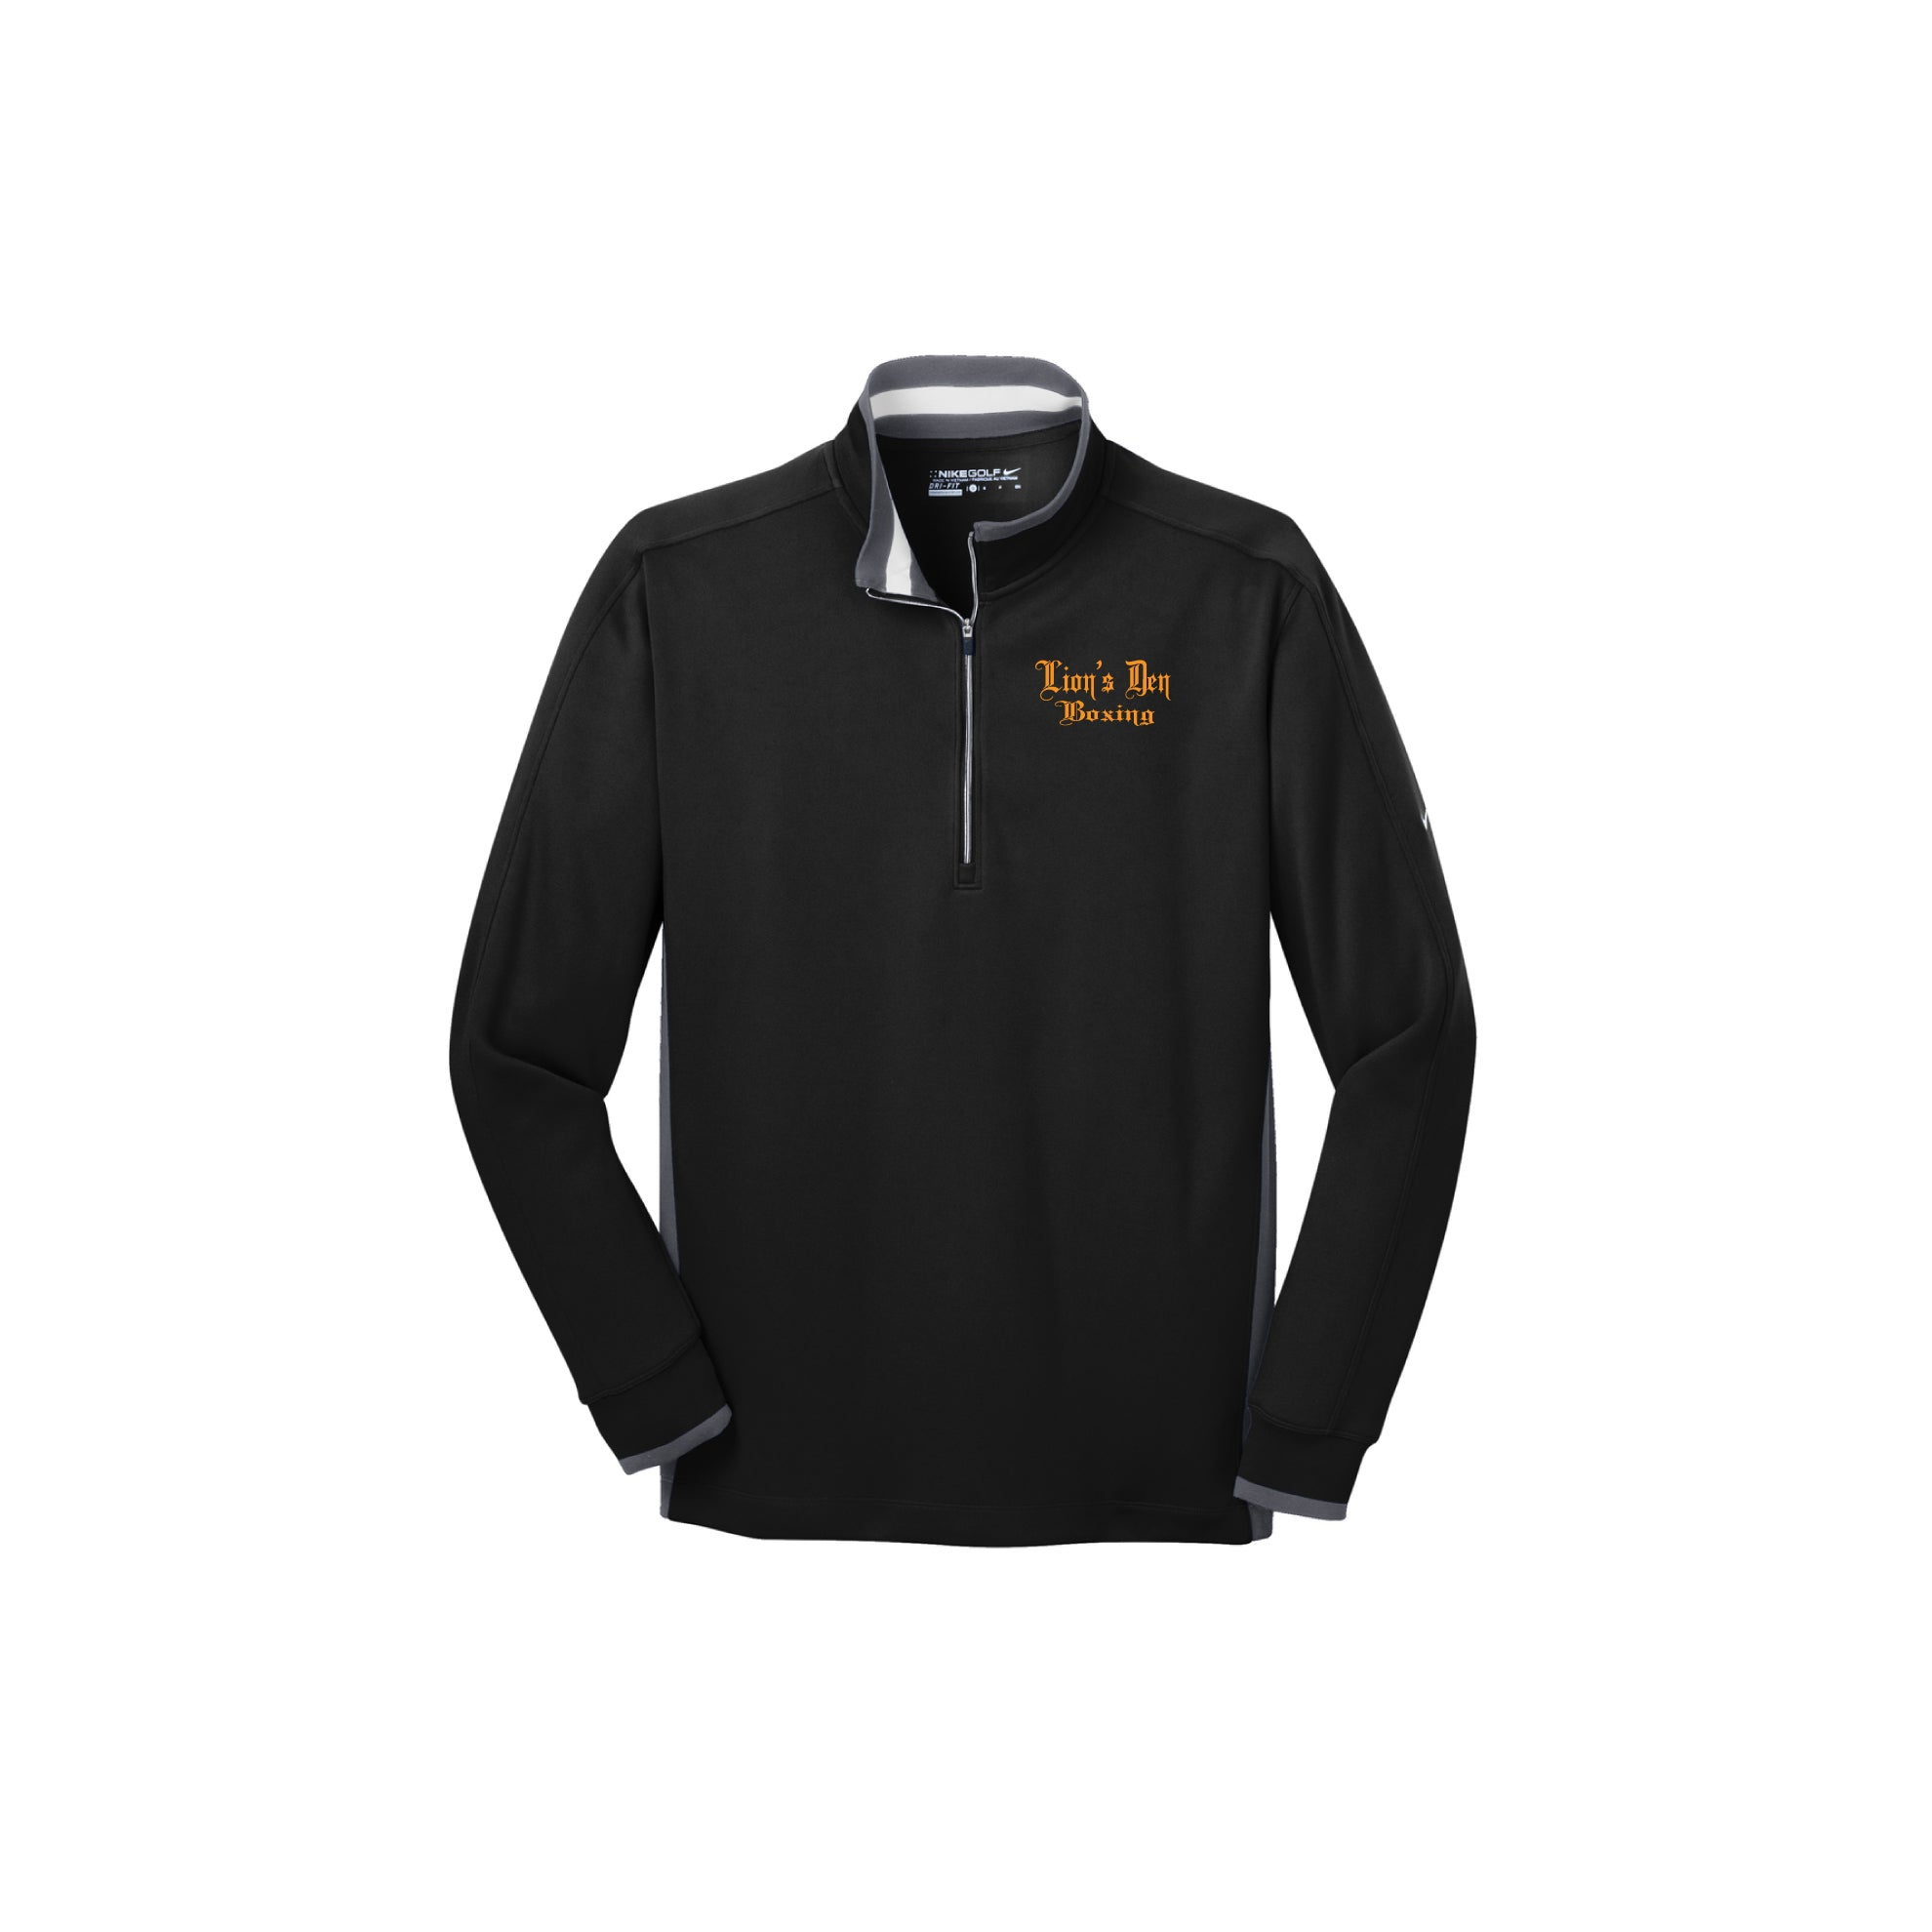 Lion's Den Boxing - Nike Dri-FIT 1/2-Zip Cover-Up - Embroidered